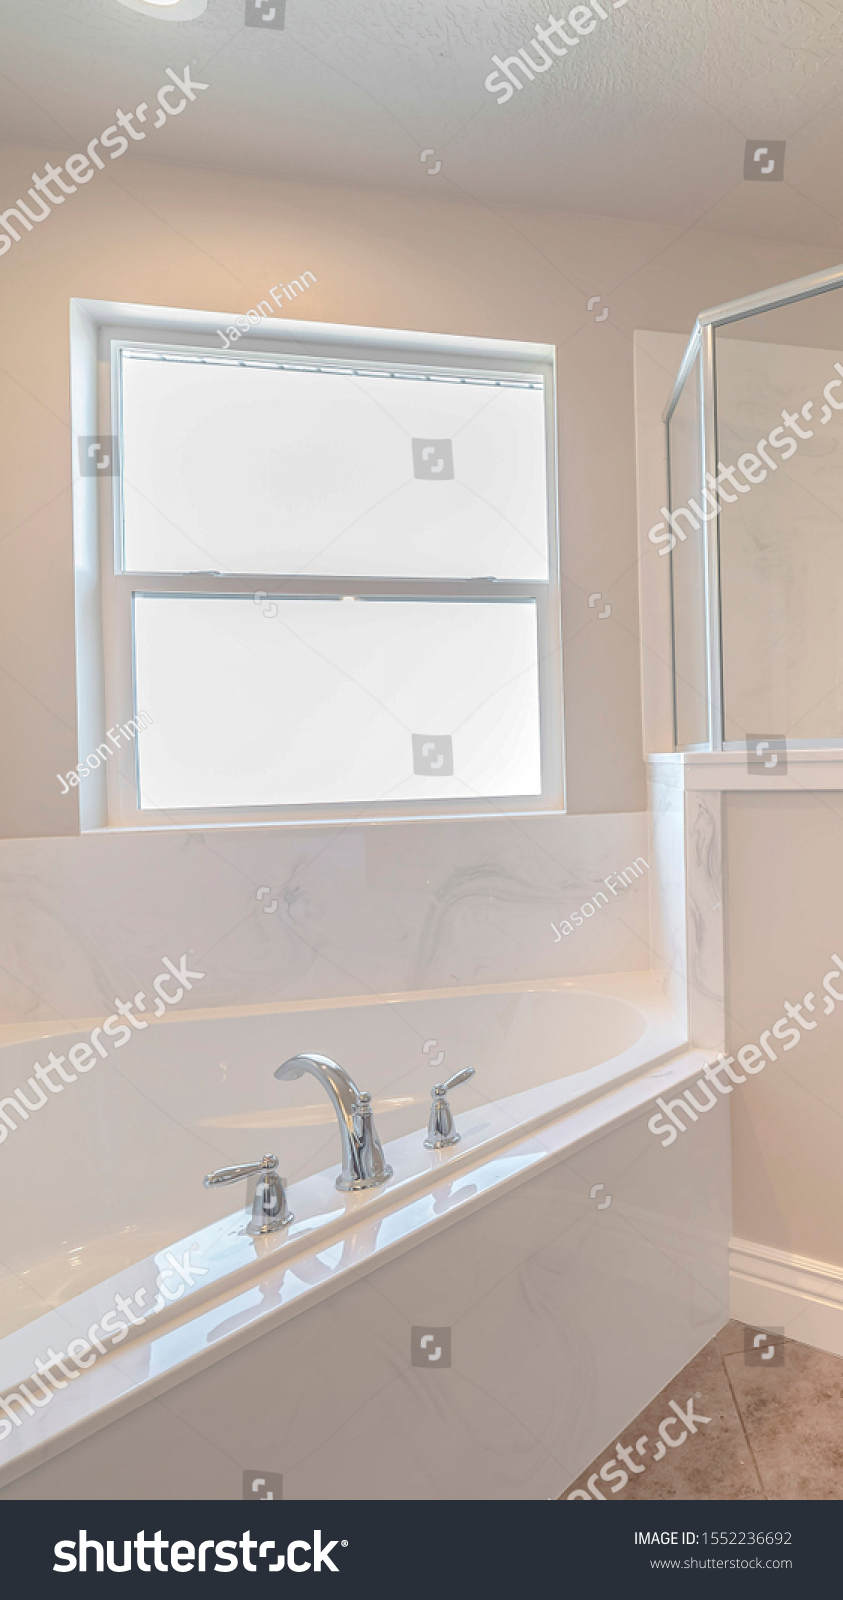 Vertical Contemporary Marble Bathroom Shower Spa Stock Photo Edit Now 1552236692